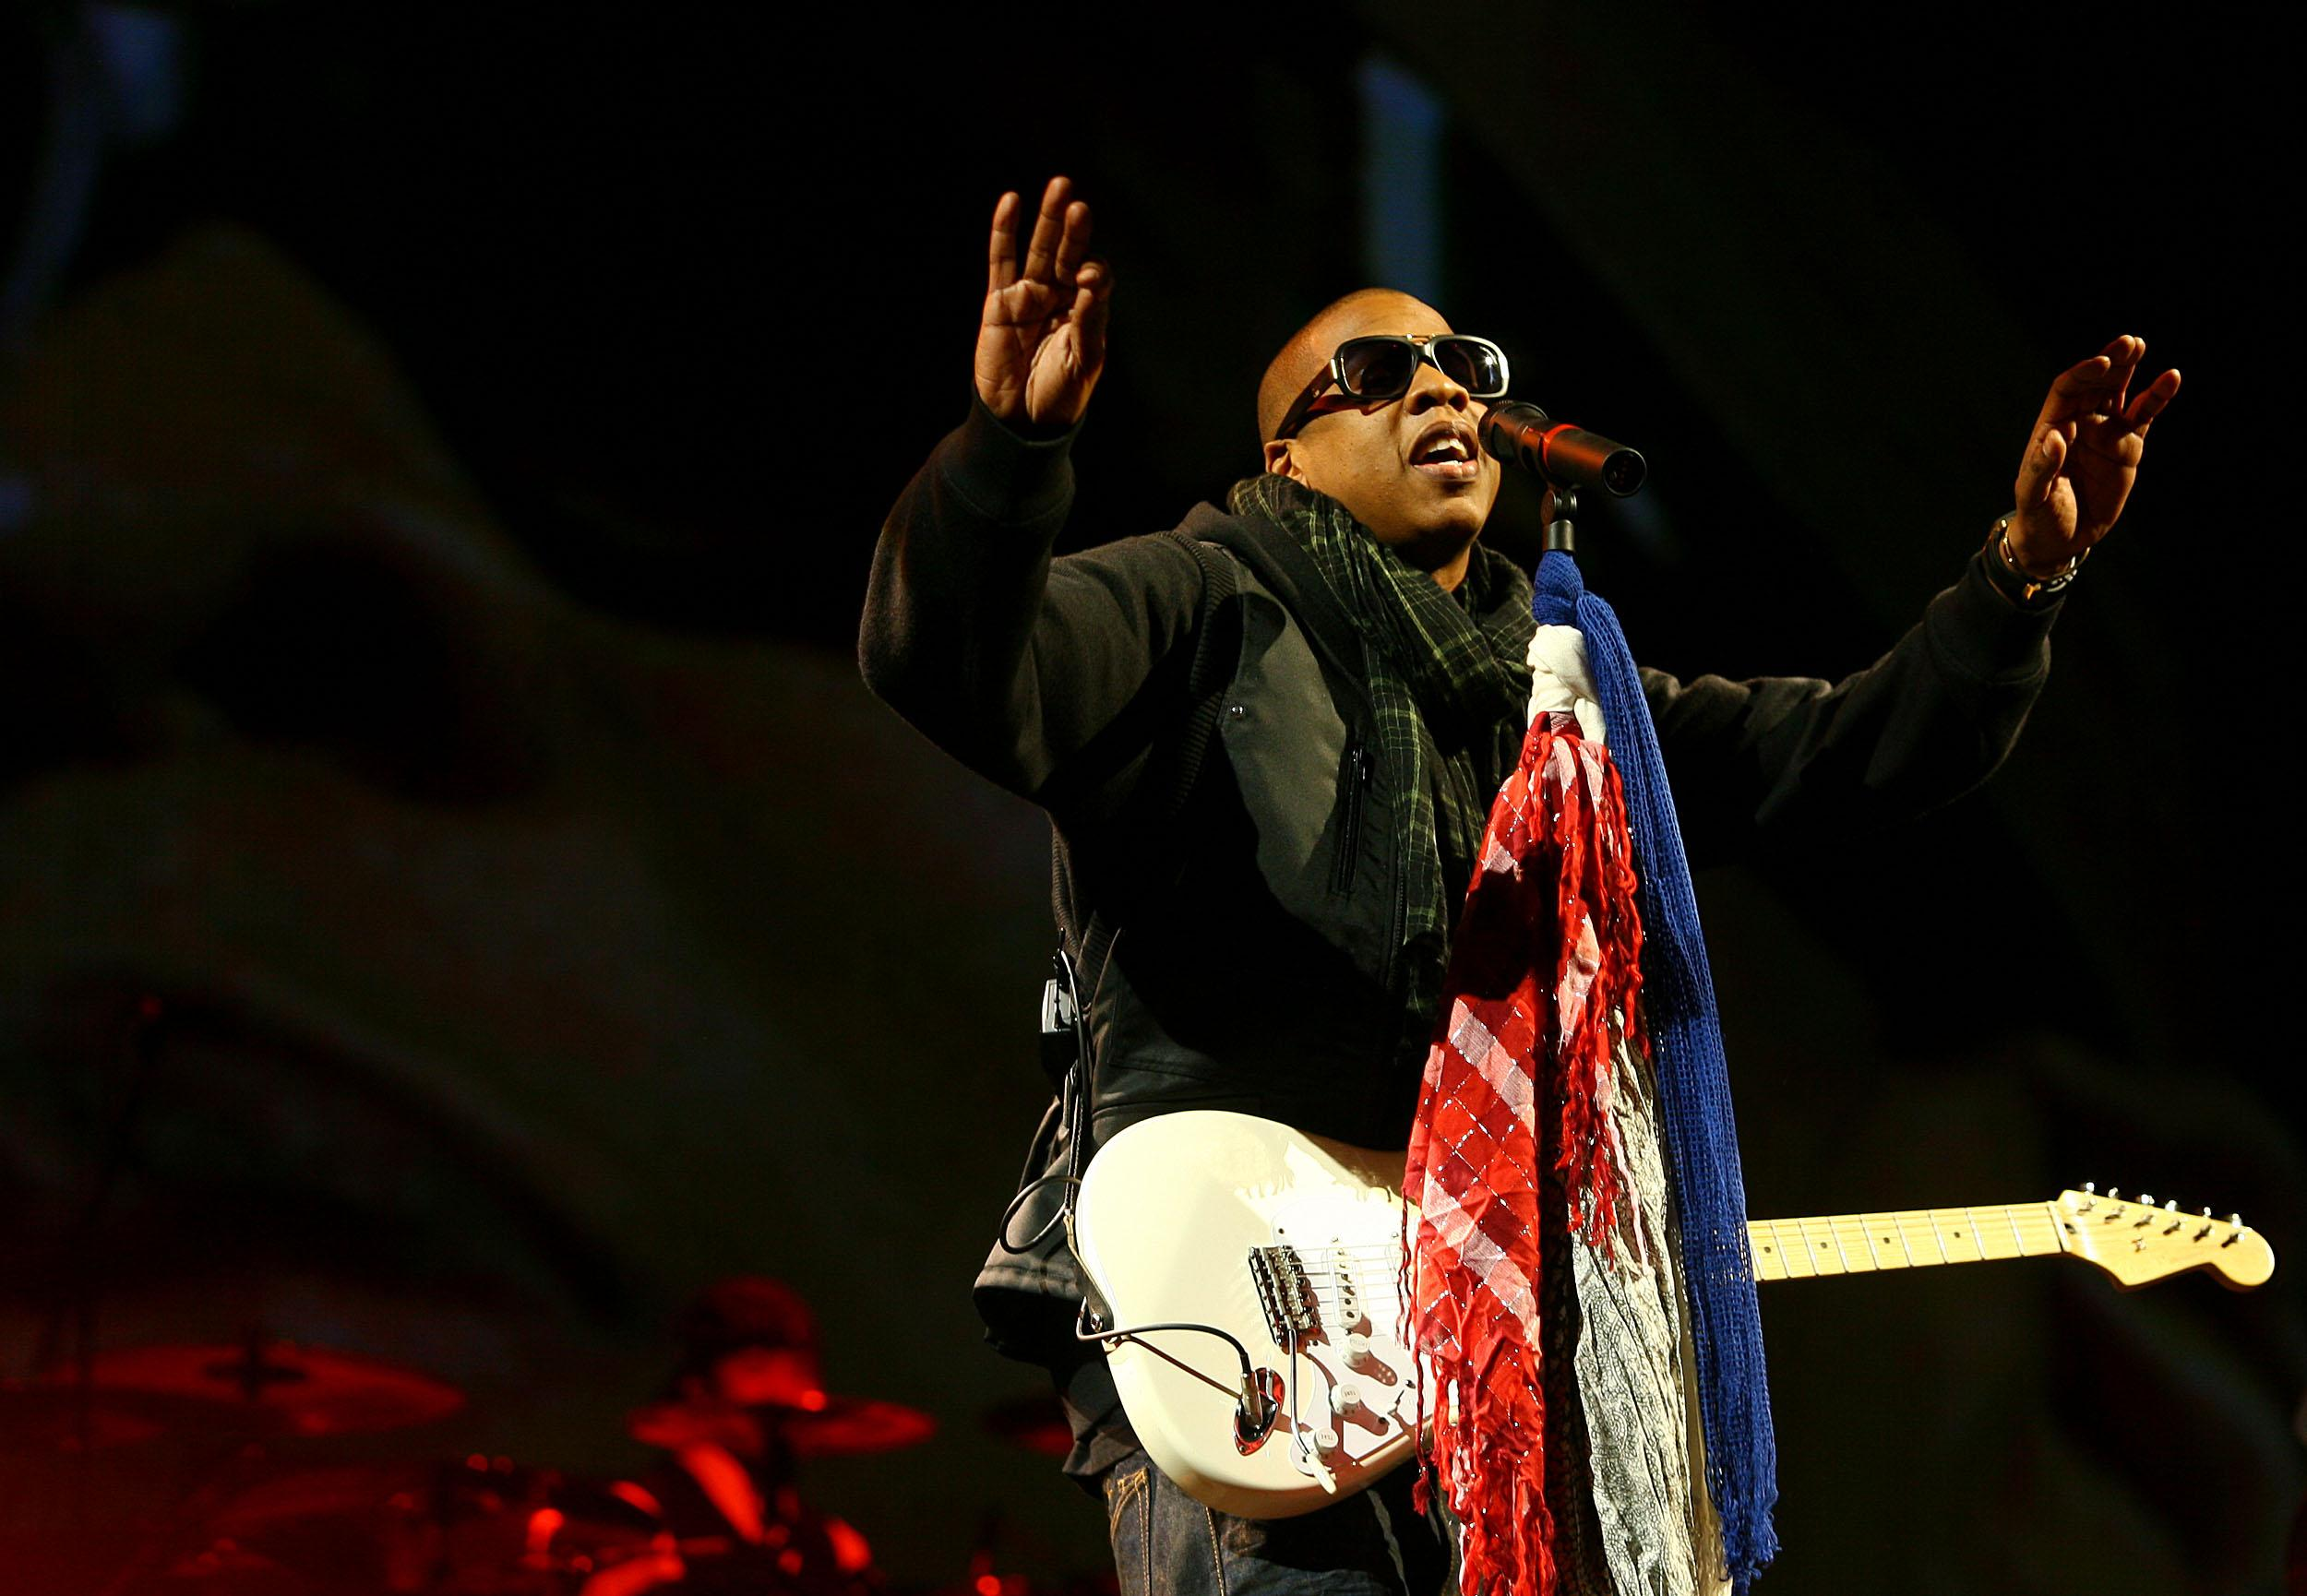 Jay Z to acquire Wimp music service